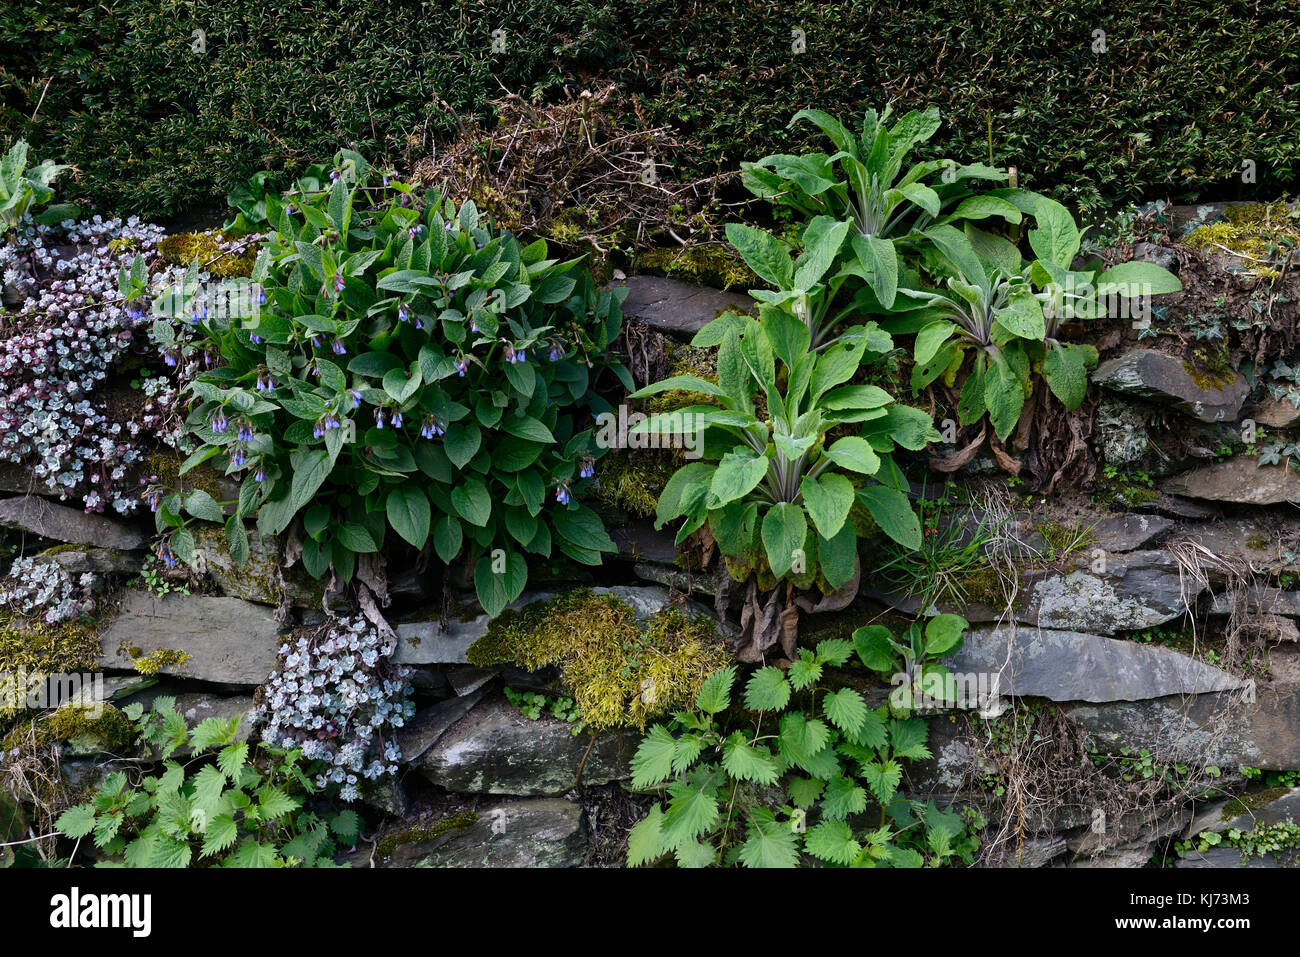 foxglove, borage, foxgloves, seedling, self sown, volunteer seedling, wall, crack, crevice, crevices, garden, gardening, - Stock Image